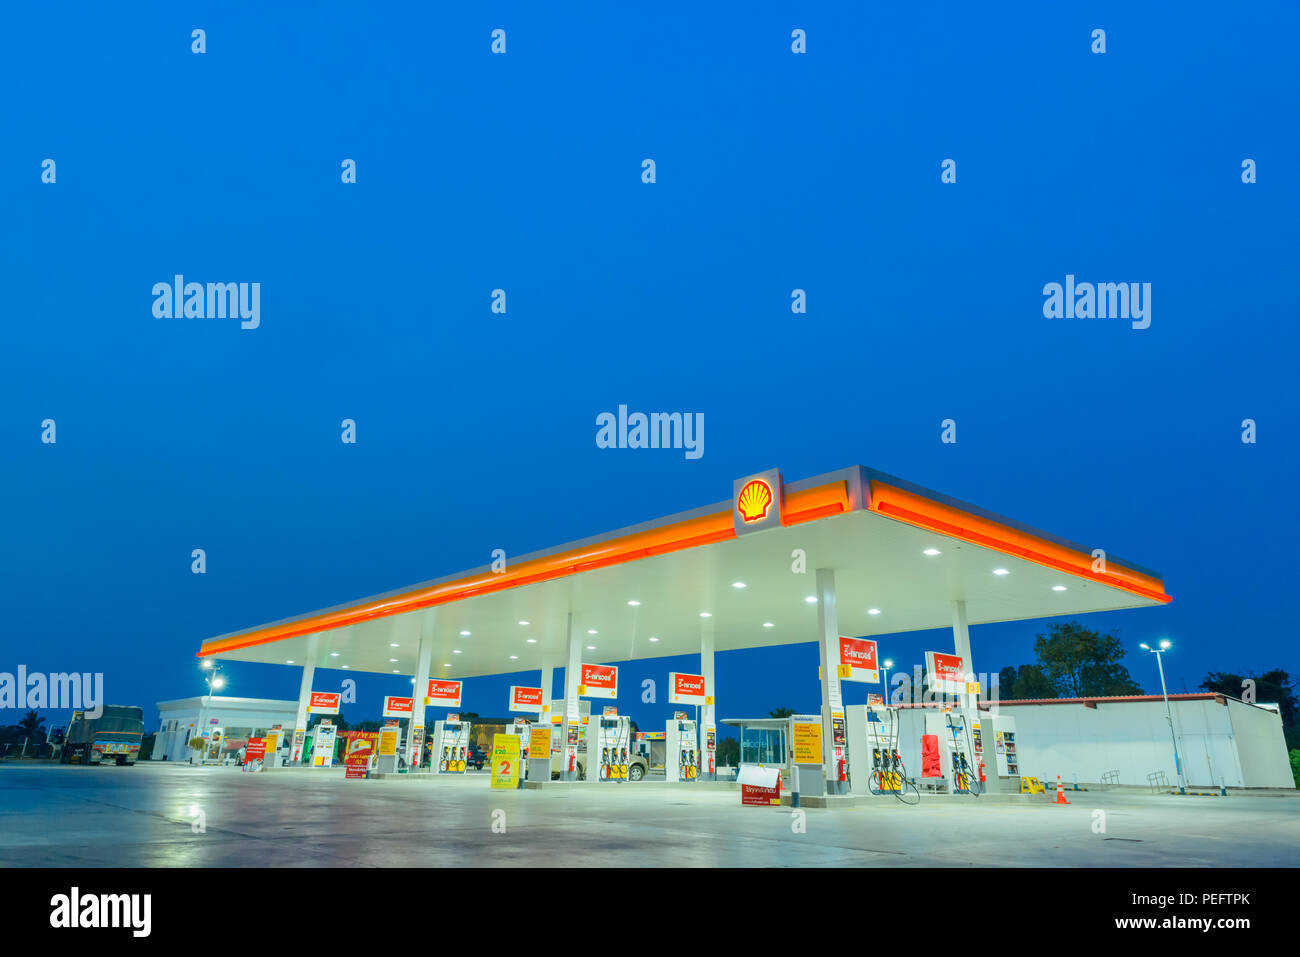 Chachoengsao, Thailand - Jan 28, 2018: Shell gas station blue sky background during sunset. Royal Dutch Shell sold its Australian Shell retail operati - Stock Image